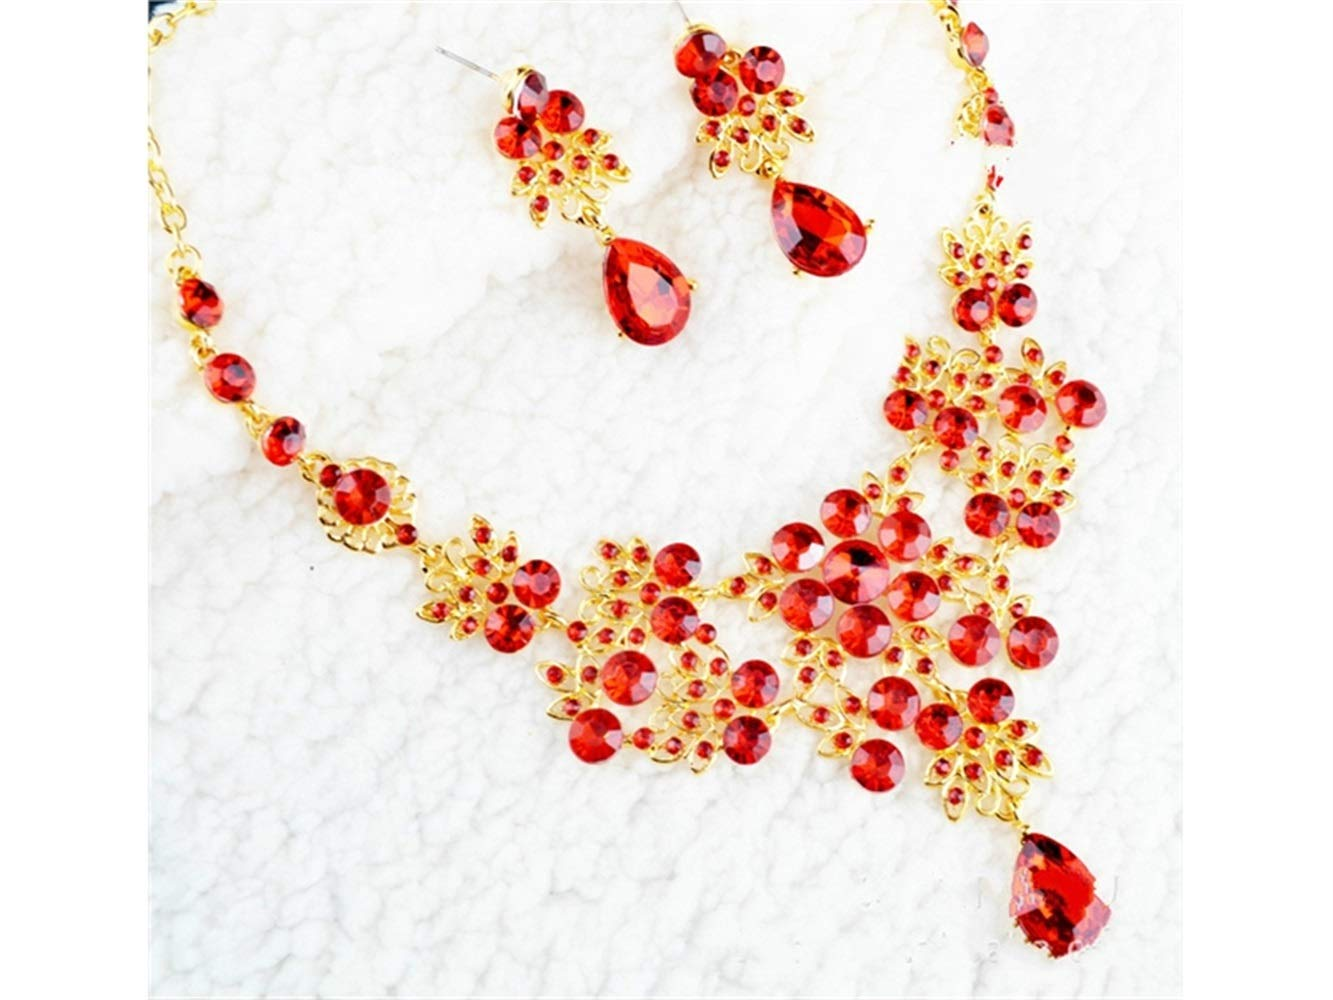 Yuchoi Girl Jewelry Girls' Jewelry Drop Shape Rhinestone Choker Clavicle Necklace Earrings Set(Red)